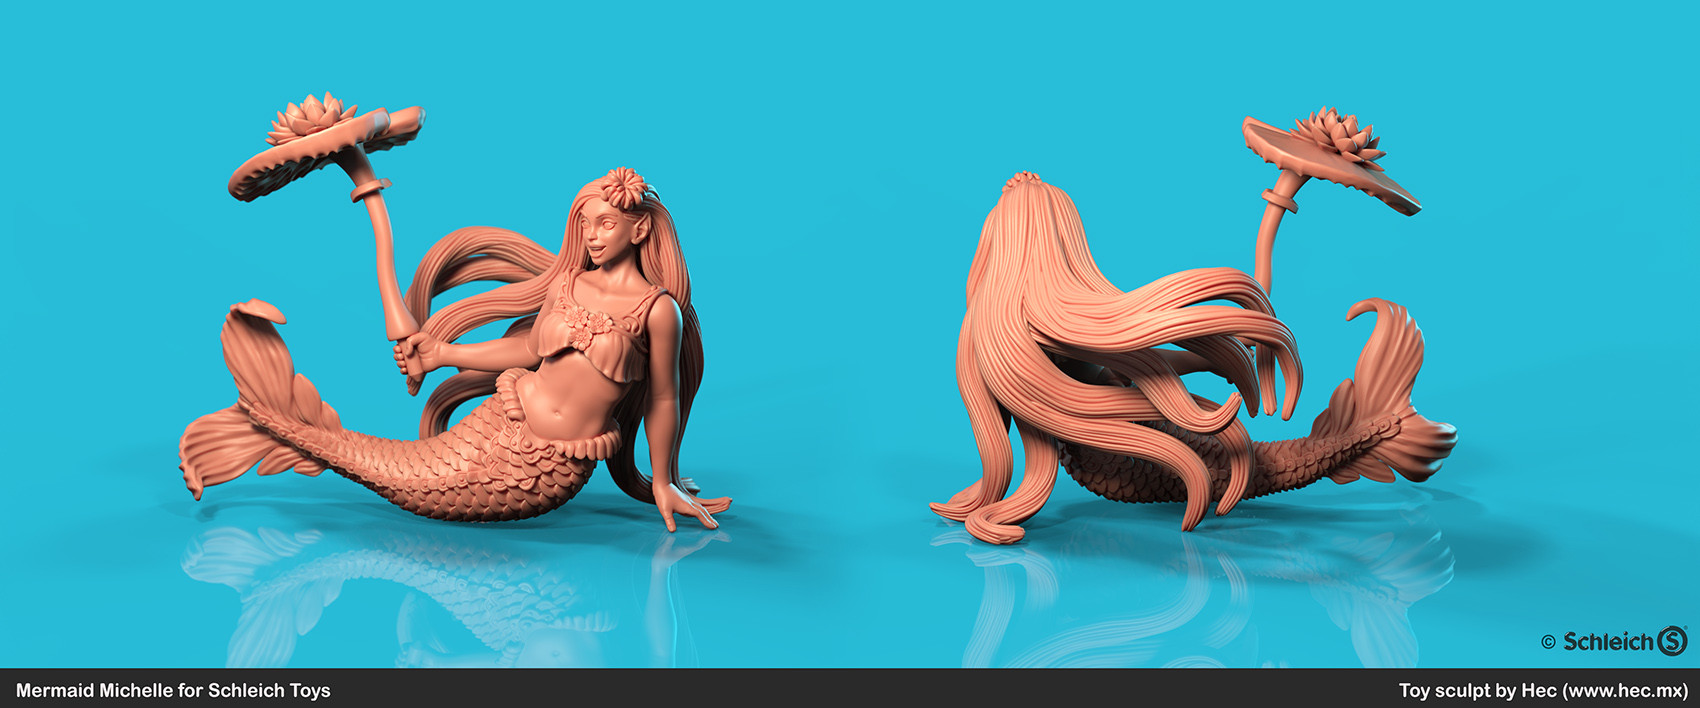 Hector moran hec mermaid 01 renders